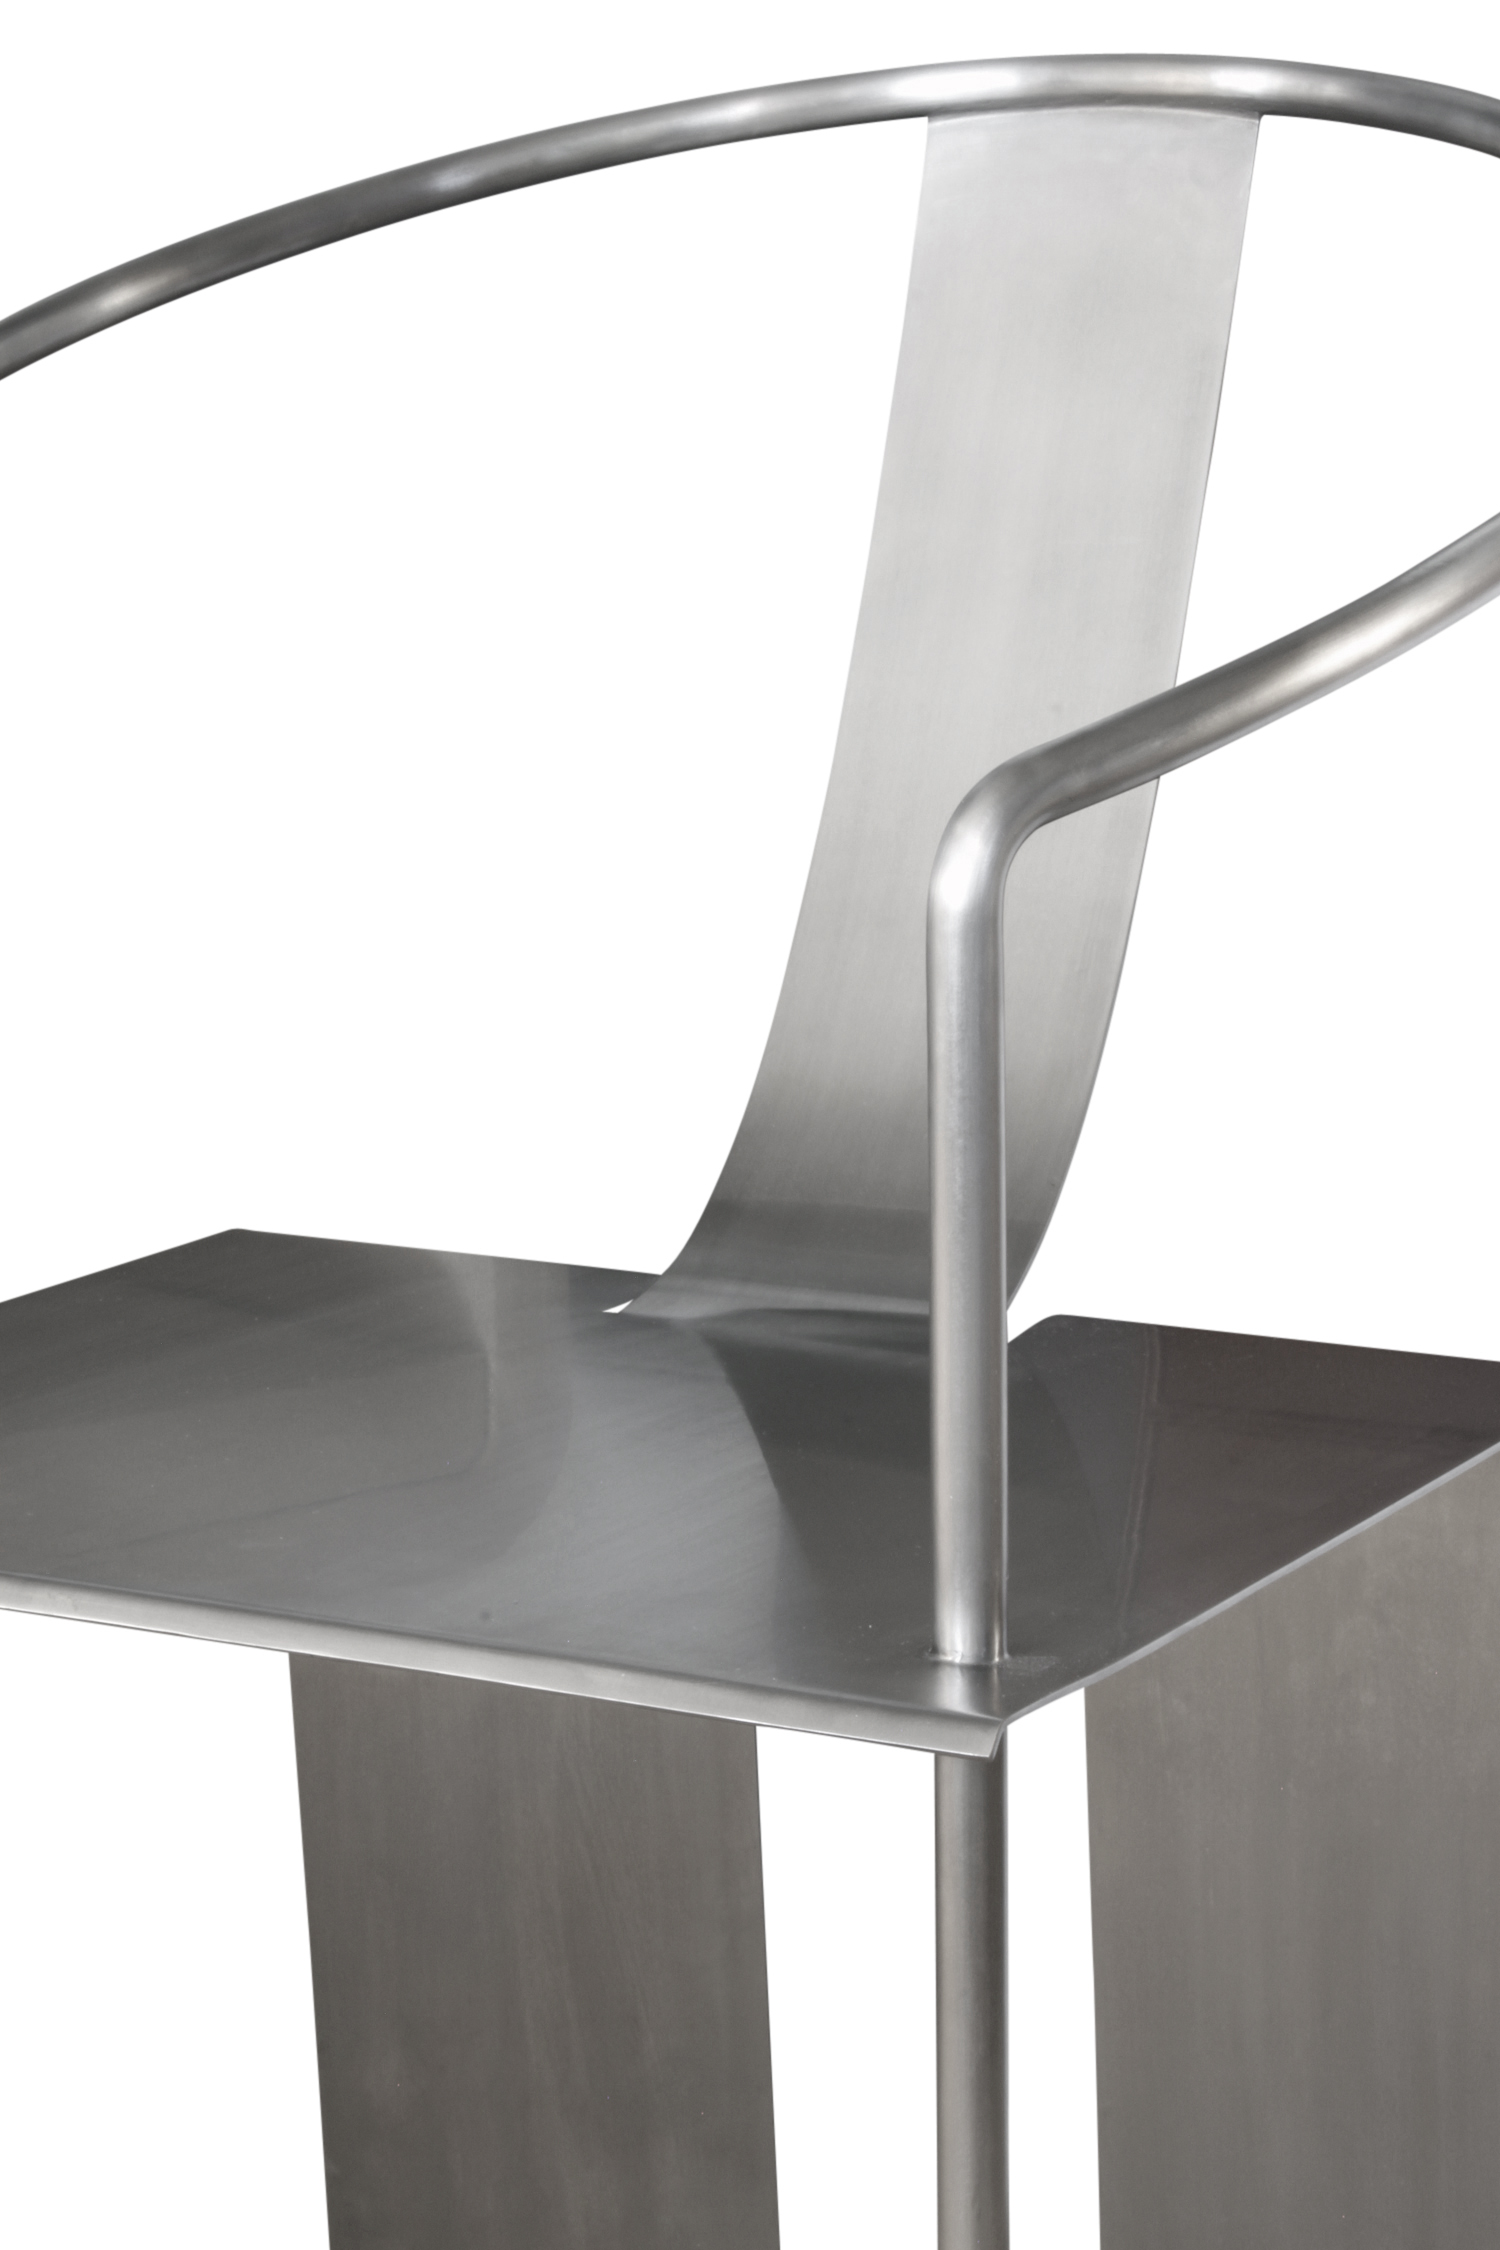 Shao Fan 300 steel chair sculpture109 agl dtl.jpg